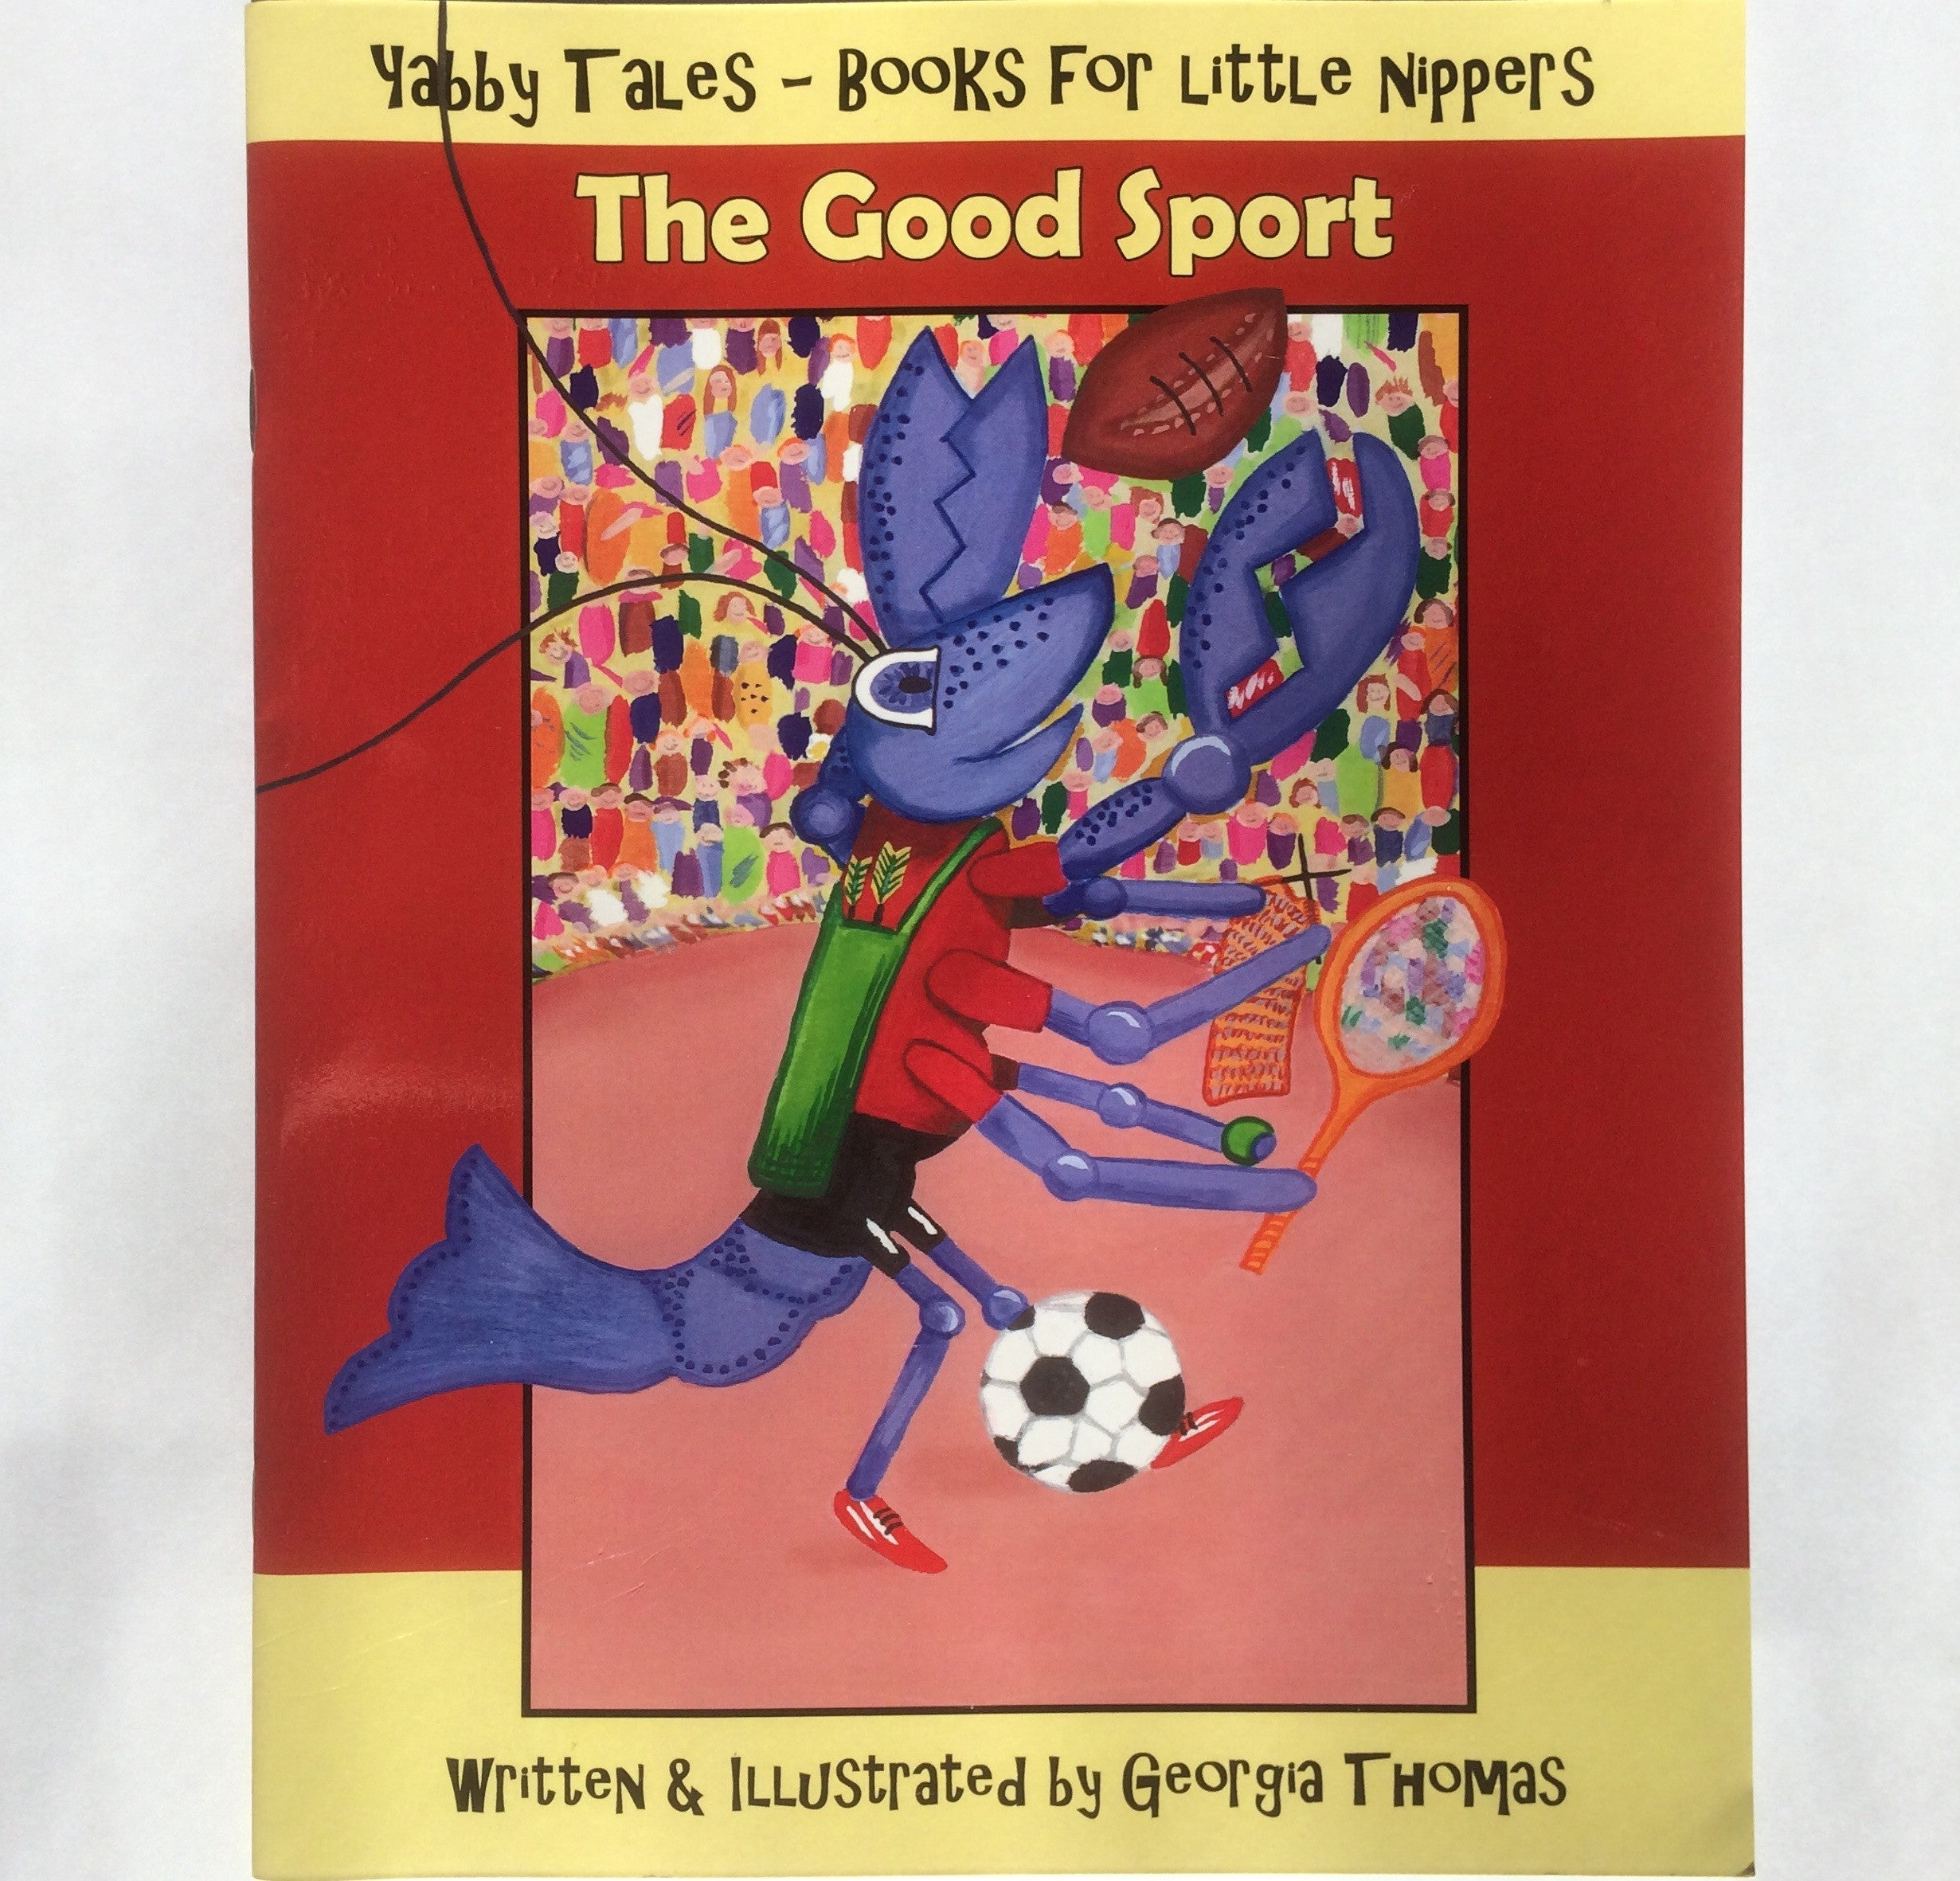 The Good Sport - Book 2 in the Yabby Tales Series